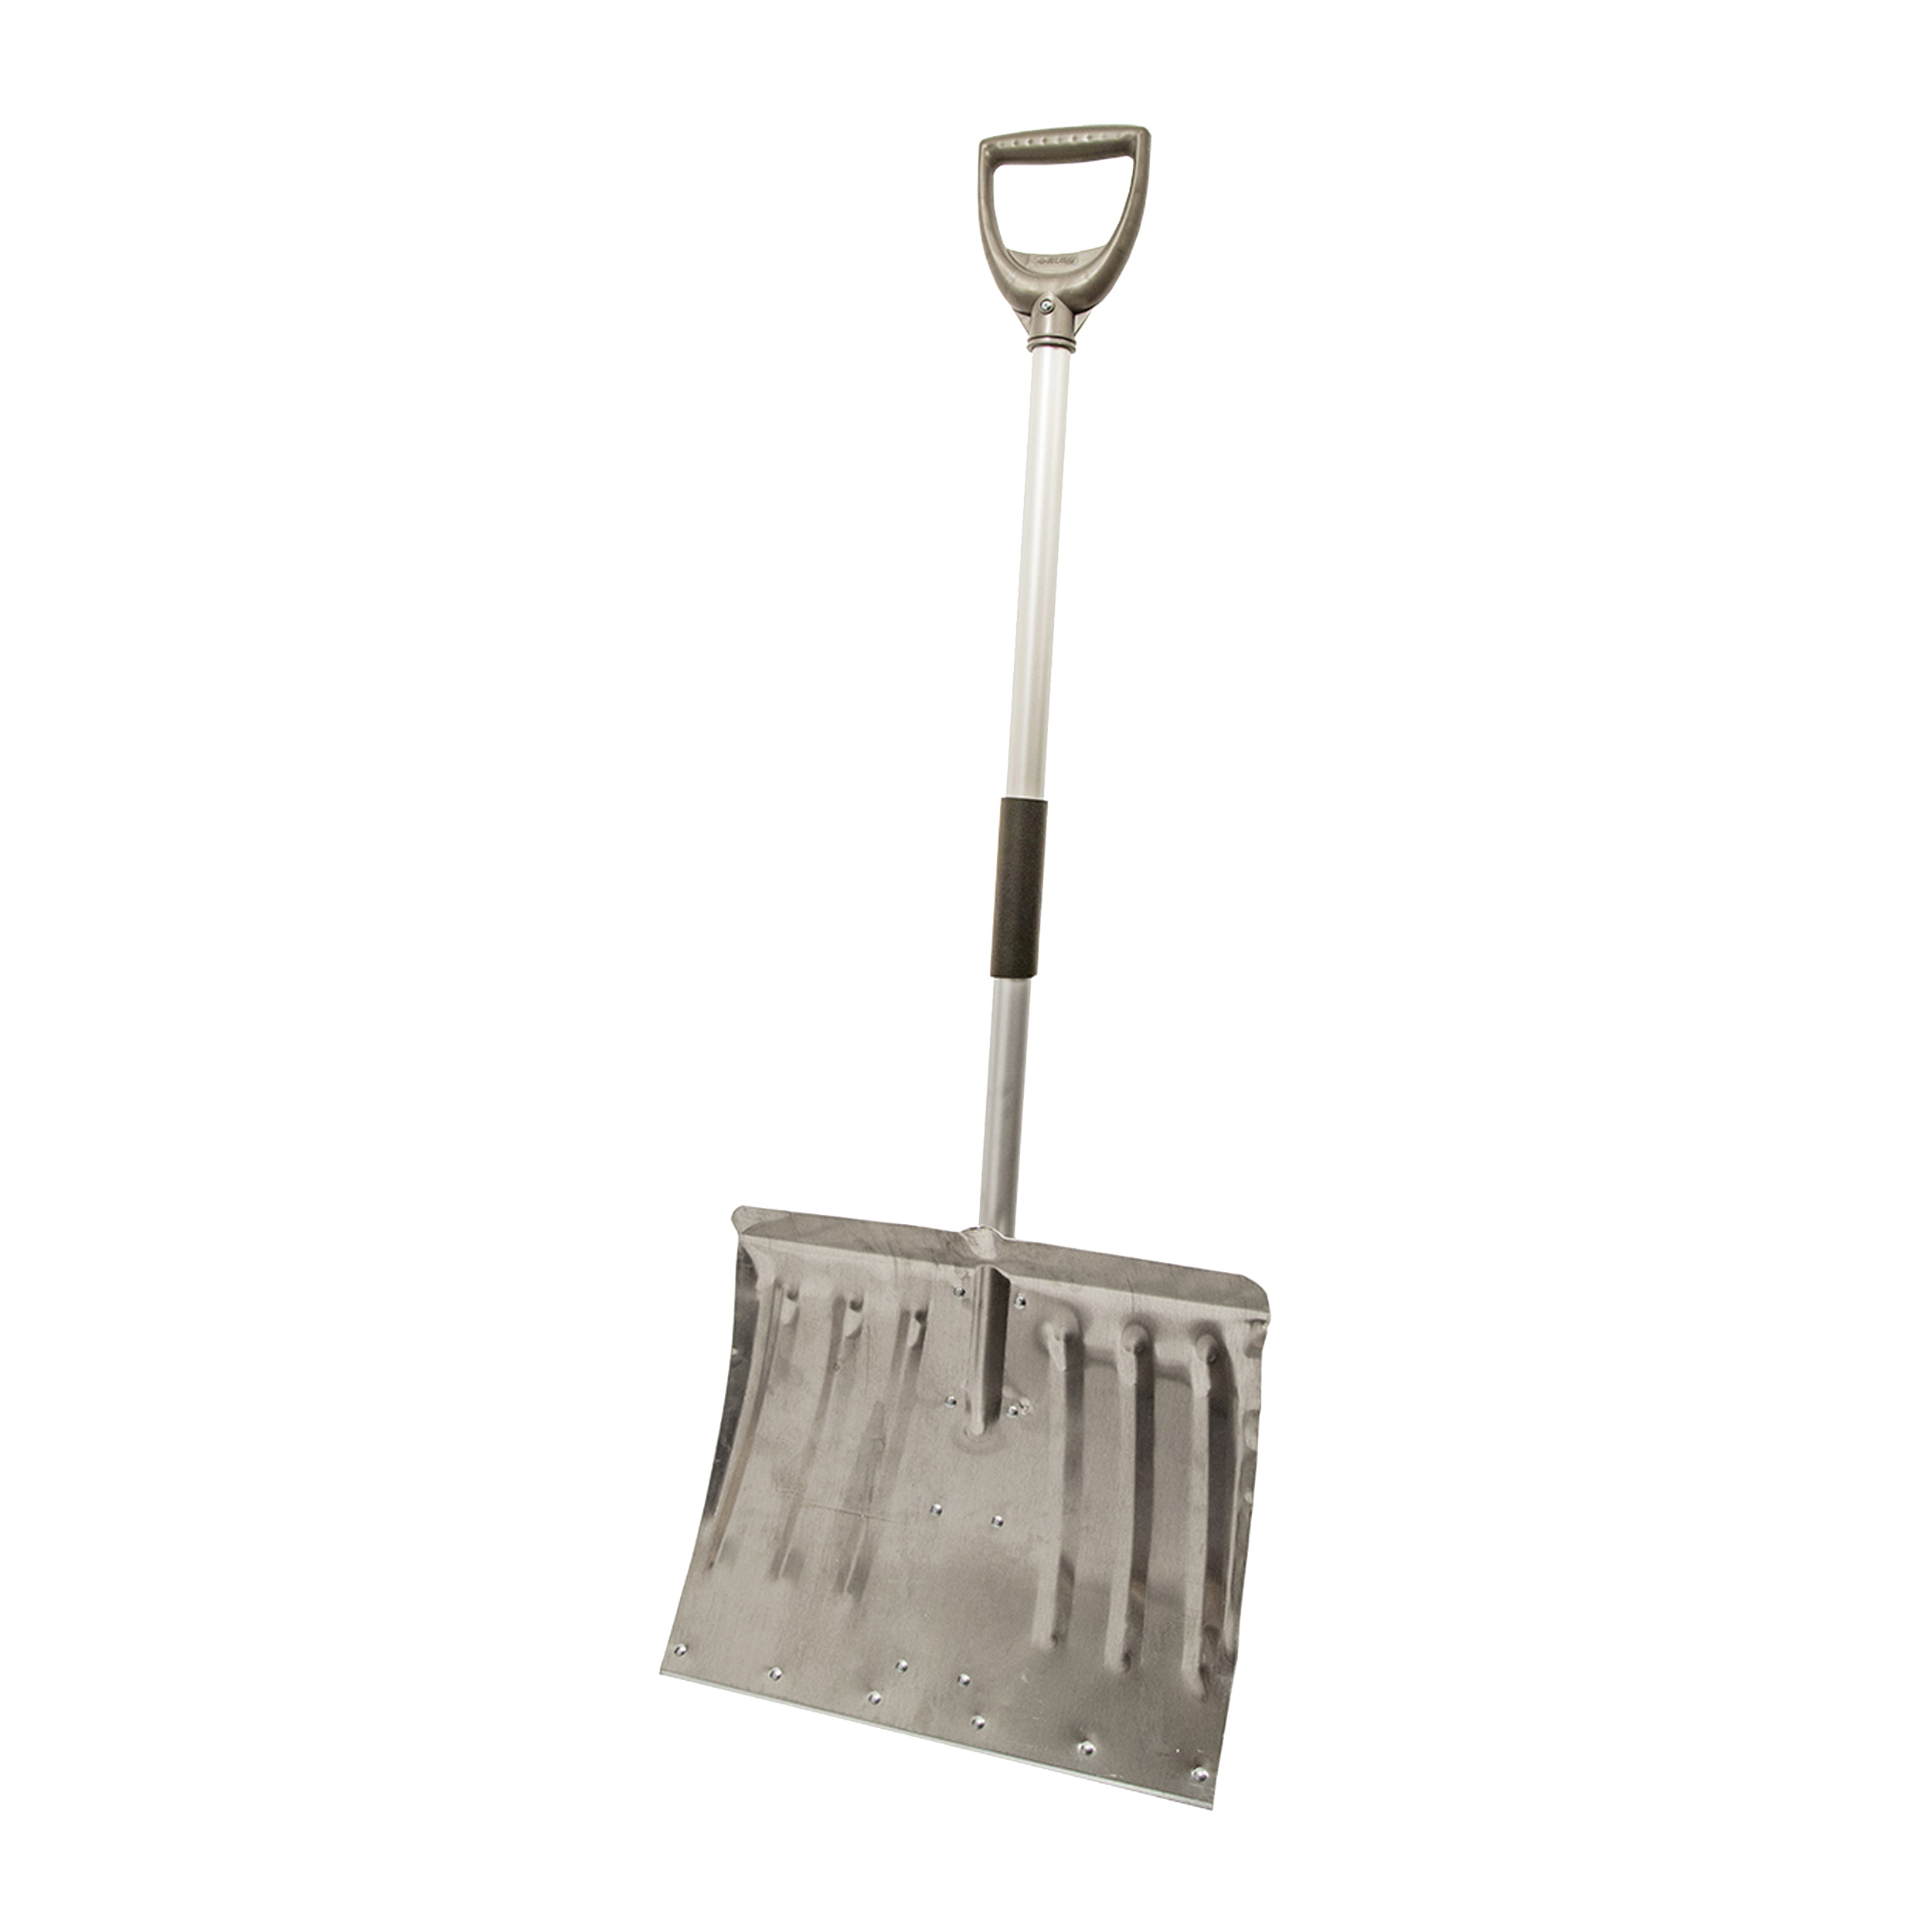 Picture of RUGG Lite-Wate 22L-S Snow Shovel, 18 in W Blade, Combo Blade, Aluminum Blade, Aluminum Handle, Silver